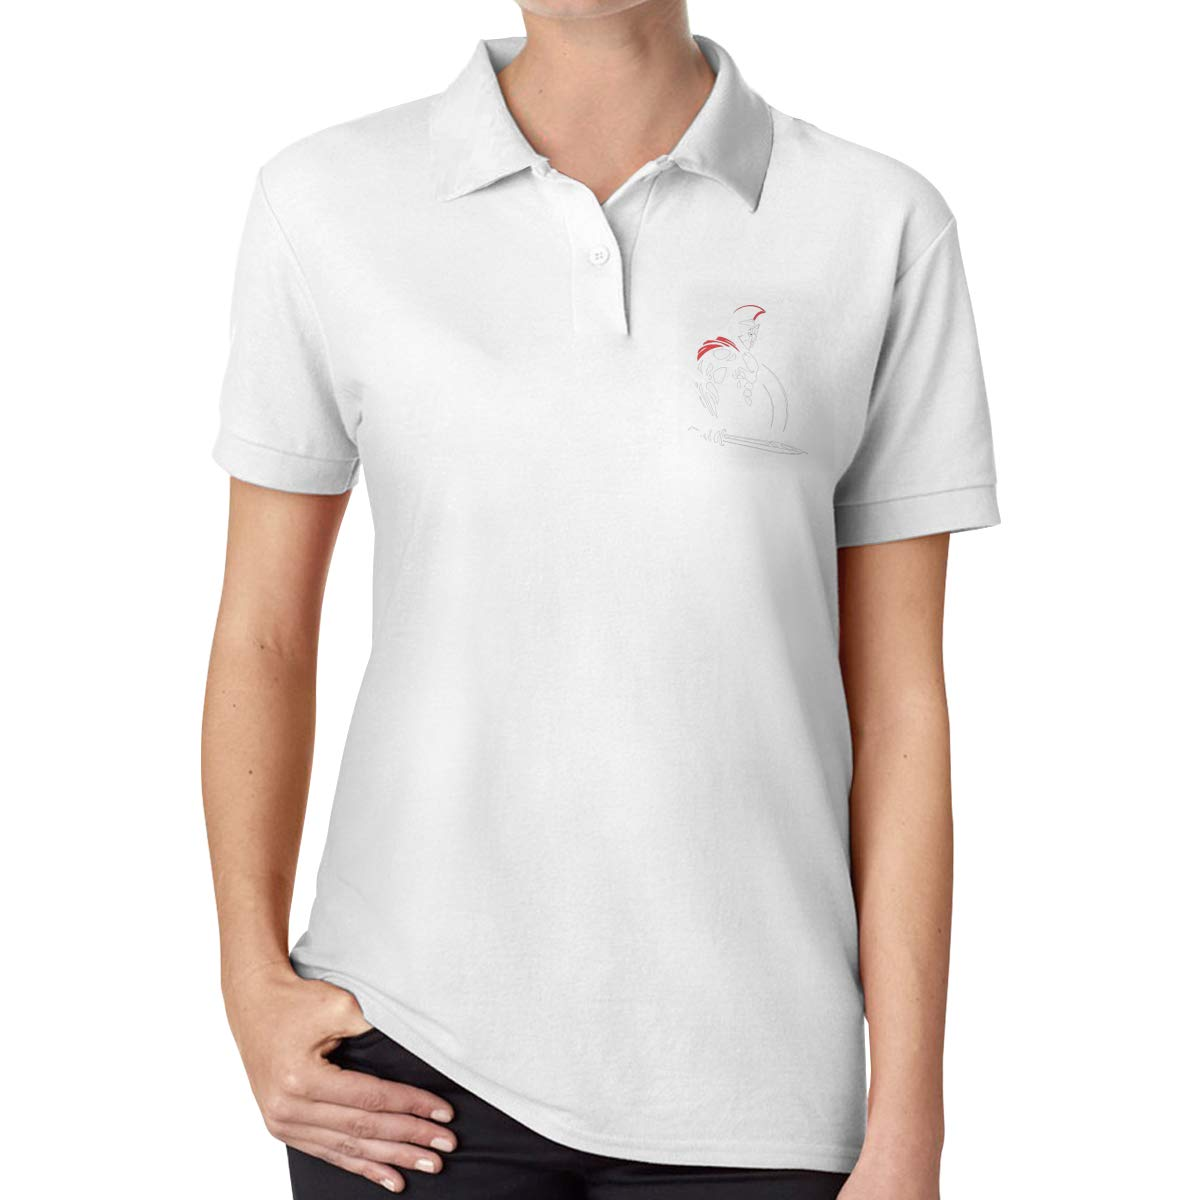 UP LUCK Spartan Women Premium Office Polo Shirt: Amazon.es: Ropa y ...